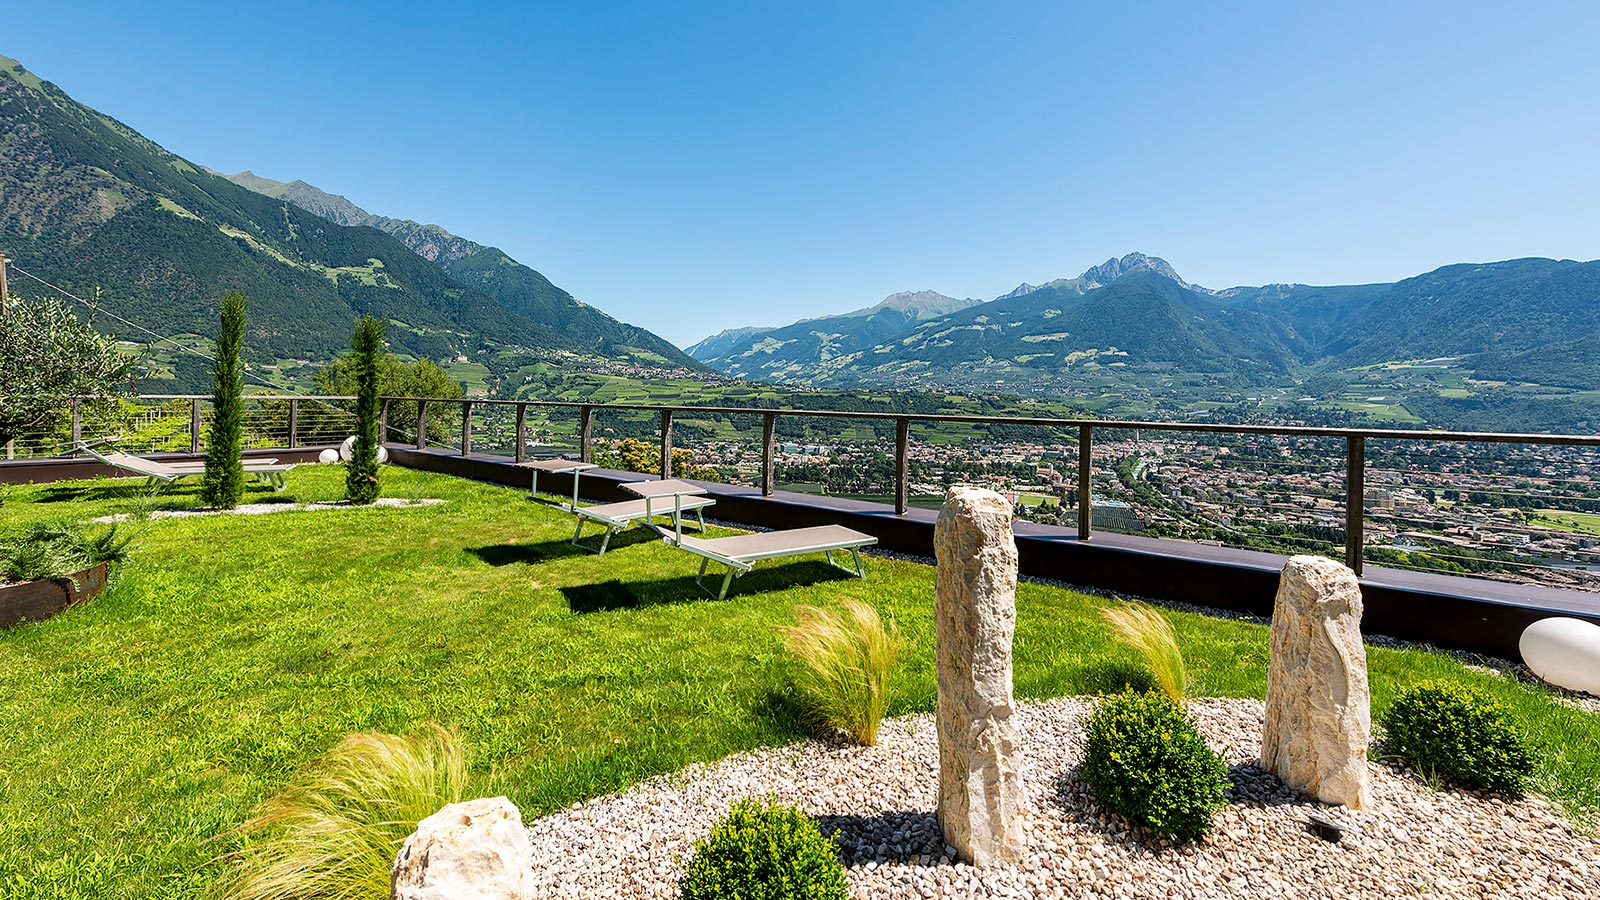 View of the city of Merano from the Residence Aqualis